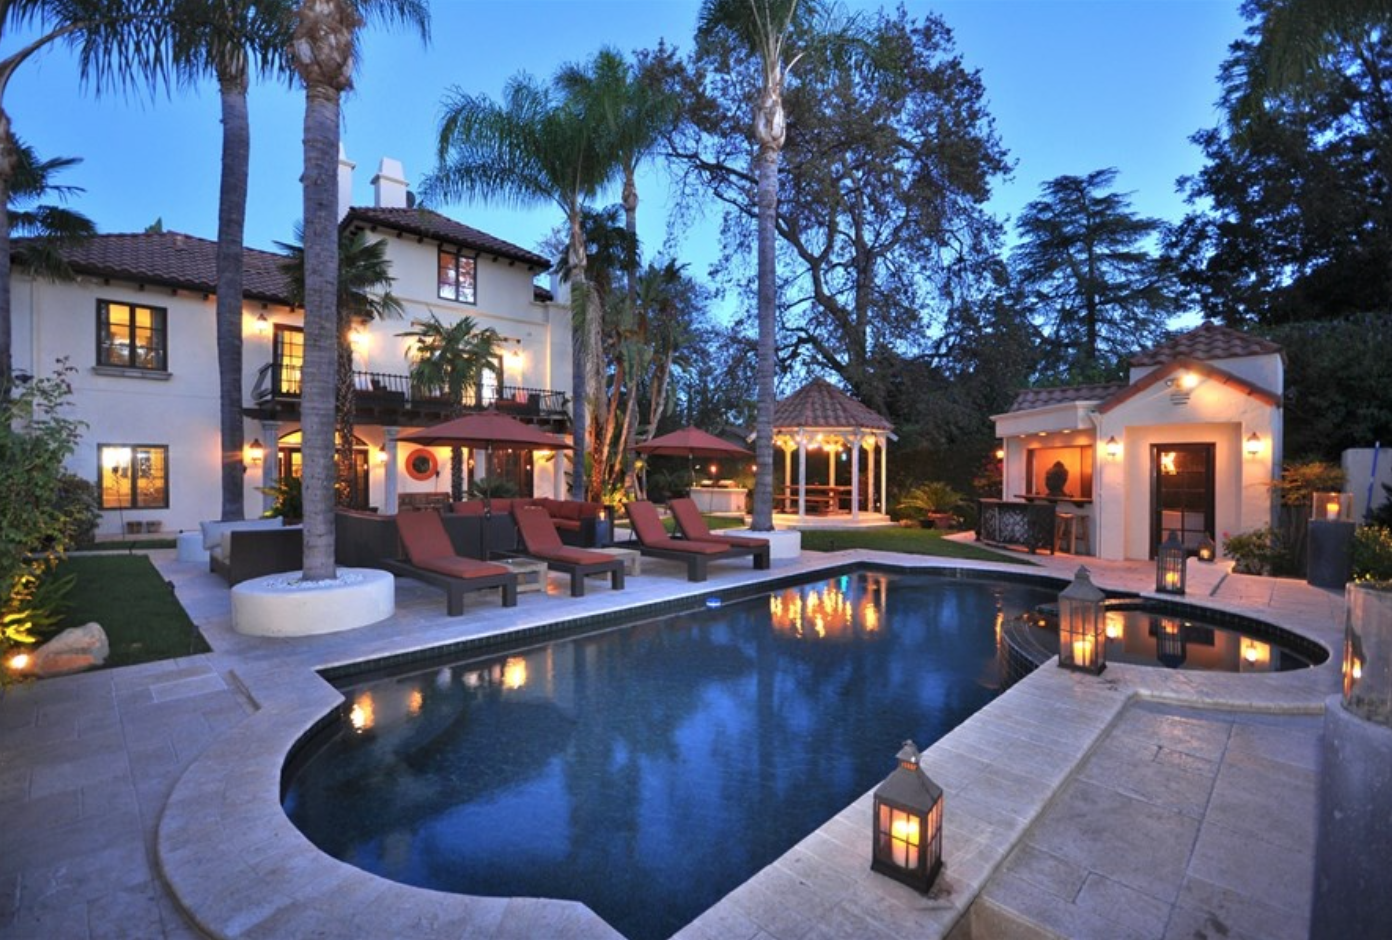 The Encino estate has a private, resort-style backyard with a pool and palm trees.